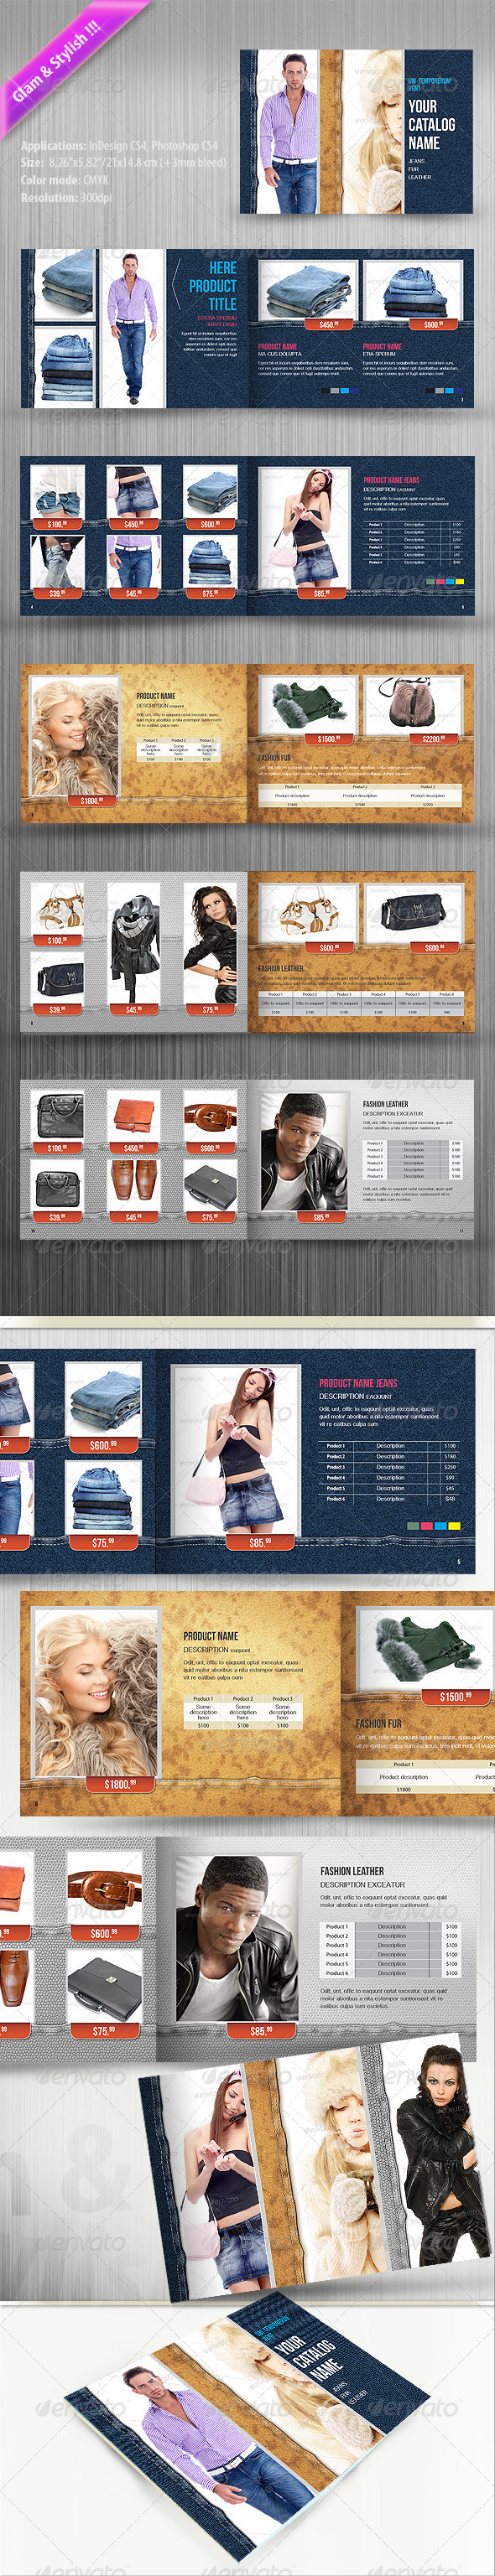 shoes catalog graphics designs templates from graphicriver